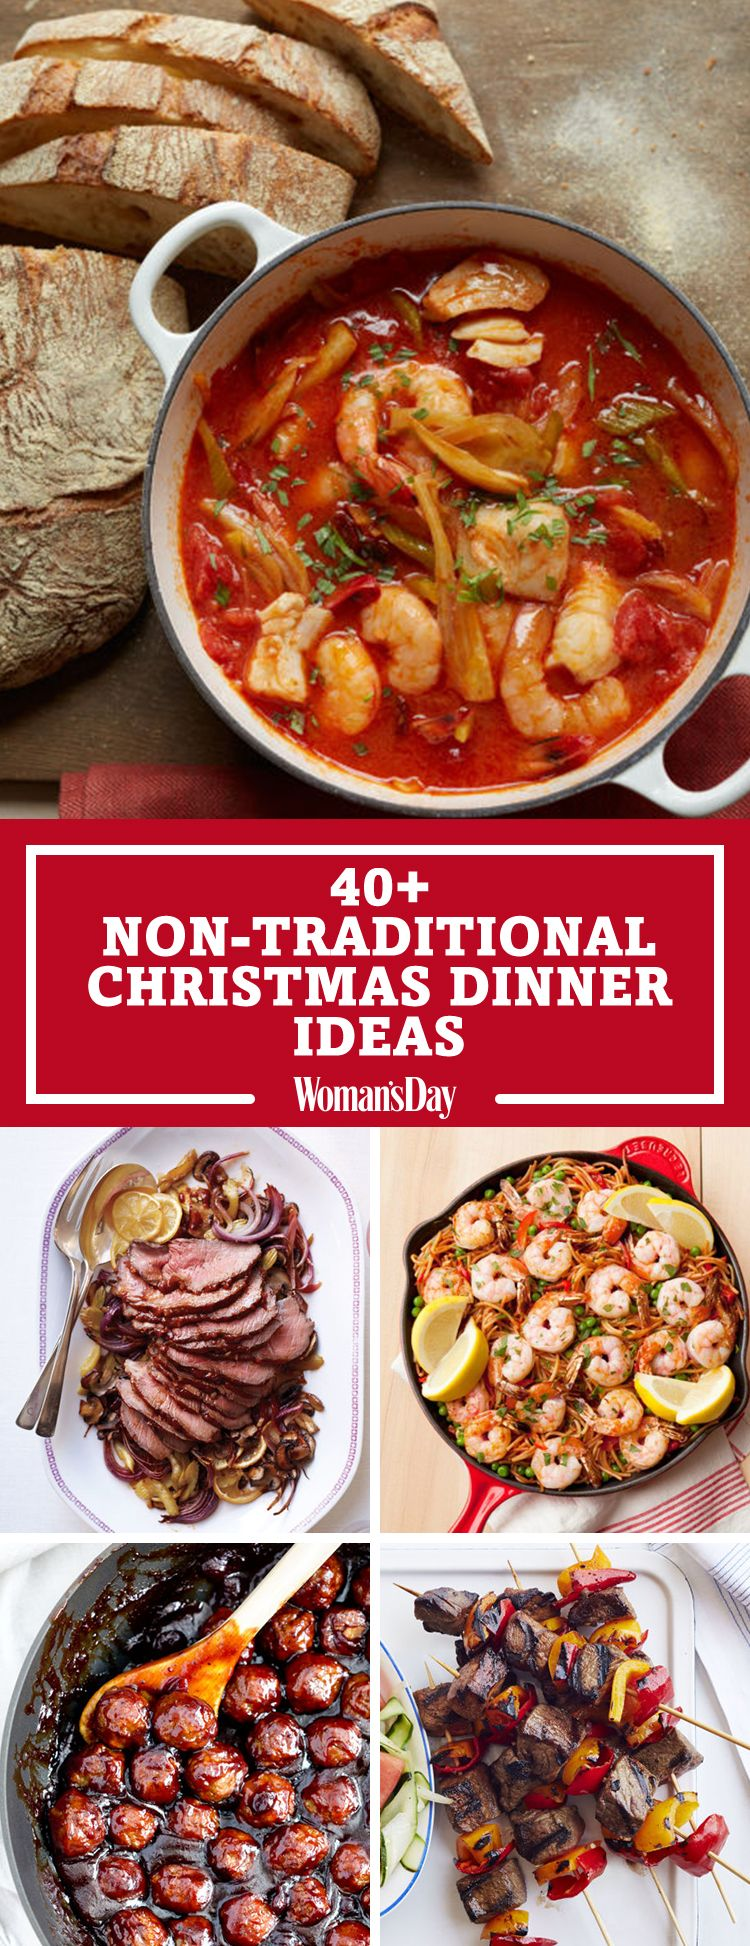 Non Tradional Foods To Cook For Christmas : tradional, foods, christmas, Christmas, Ideas, Holiday, Dinner, Level, Dinner,, Traditional, Nontraditional